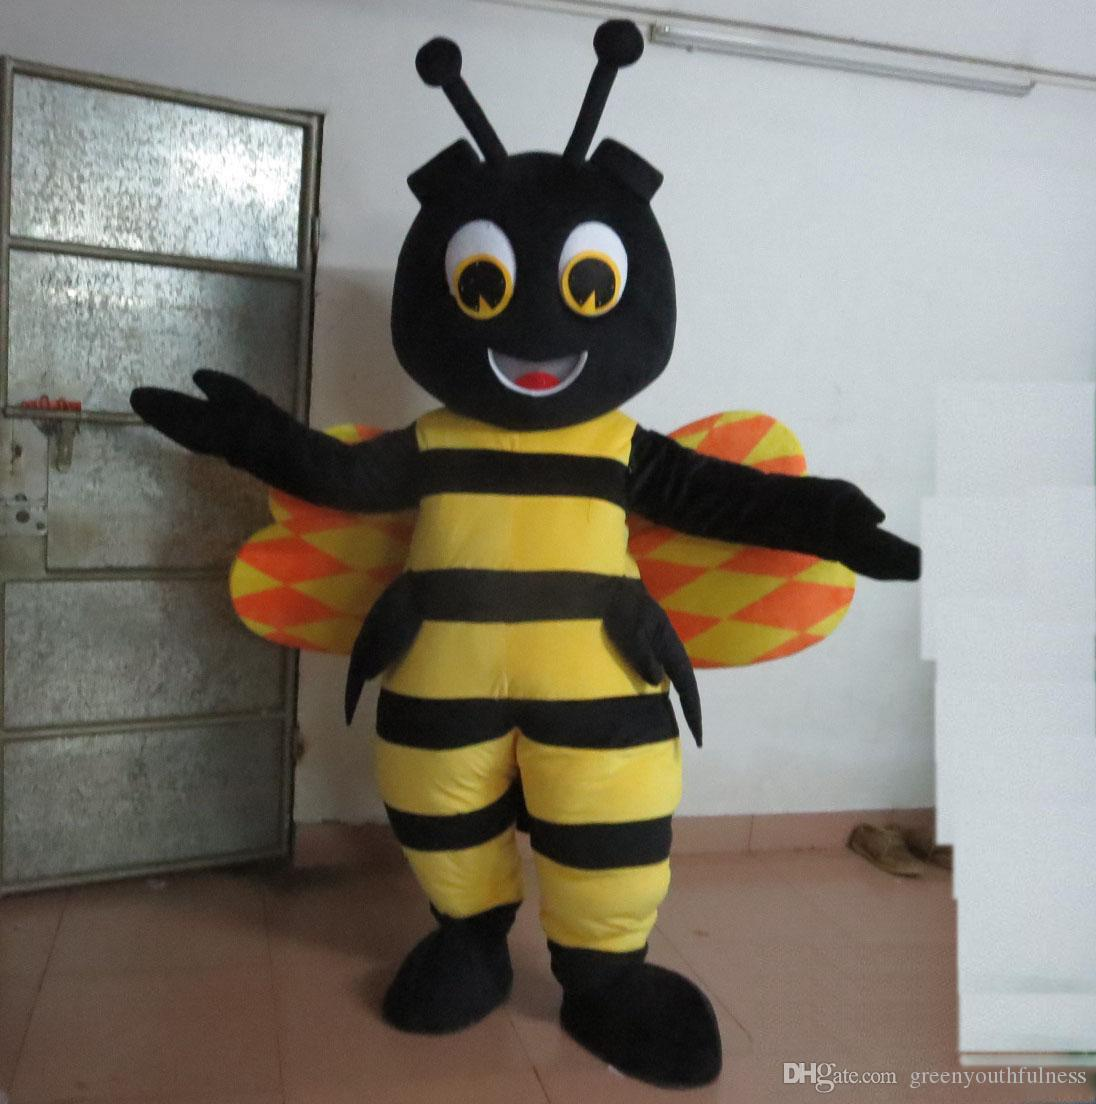 2019 hot sale happy hornet mascot costume for adults for sale